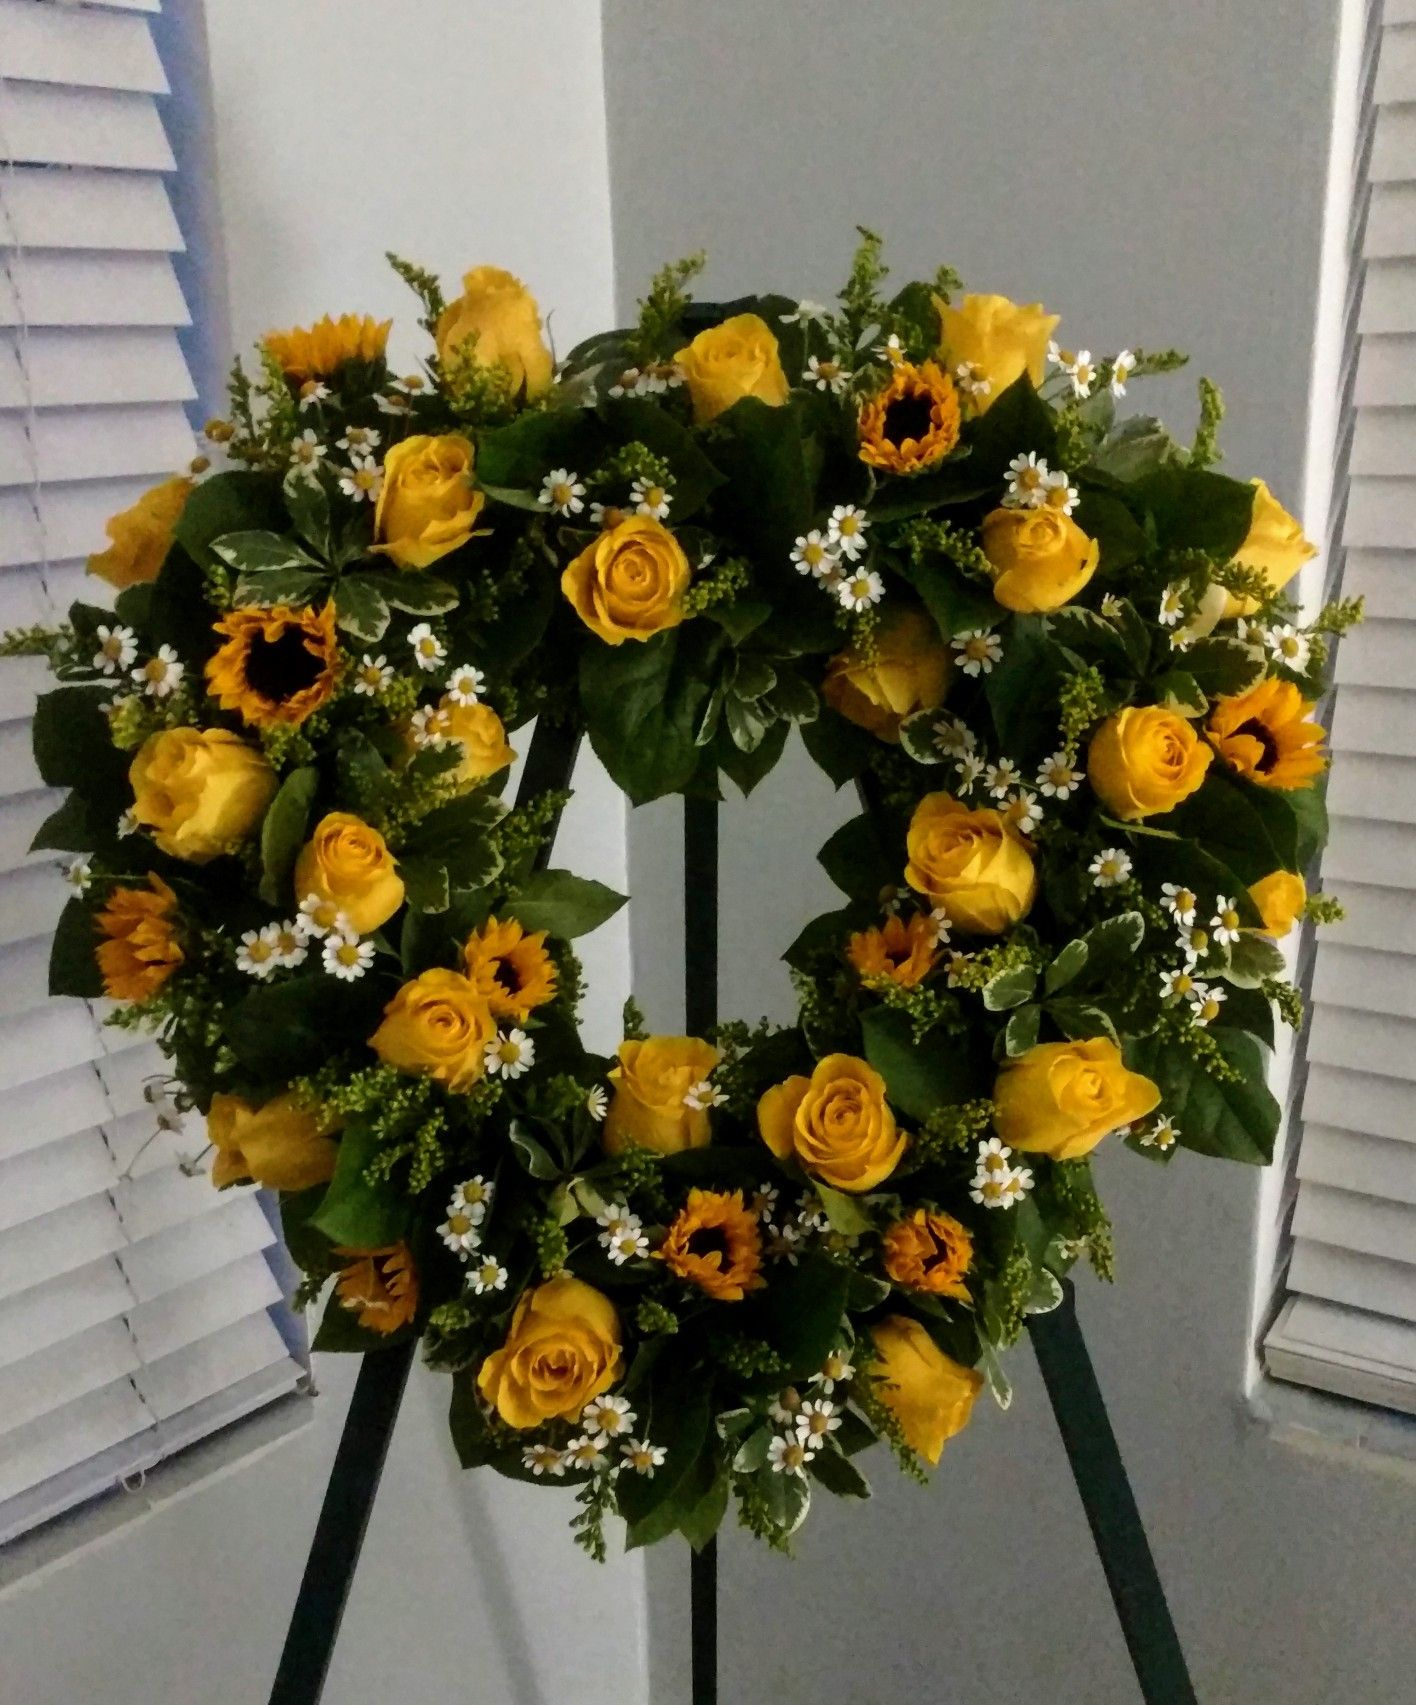 Pin On Floral Arrangements By Jcbo